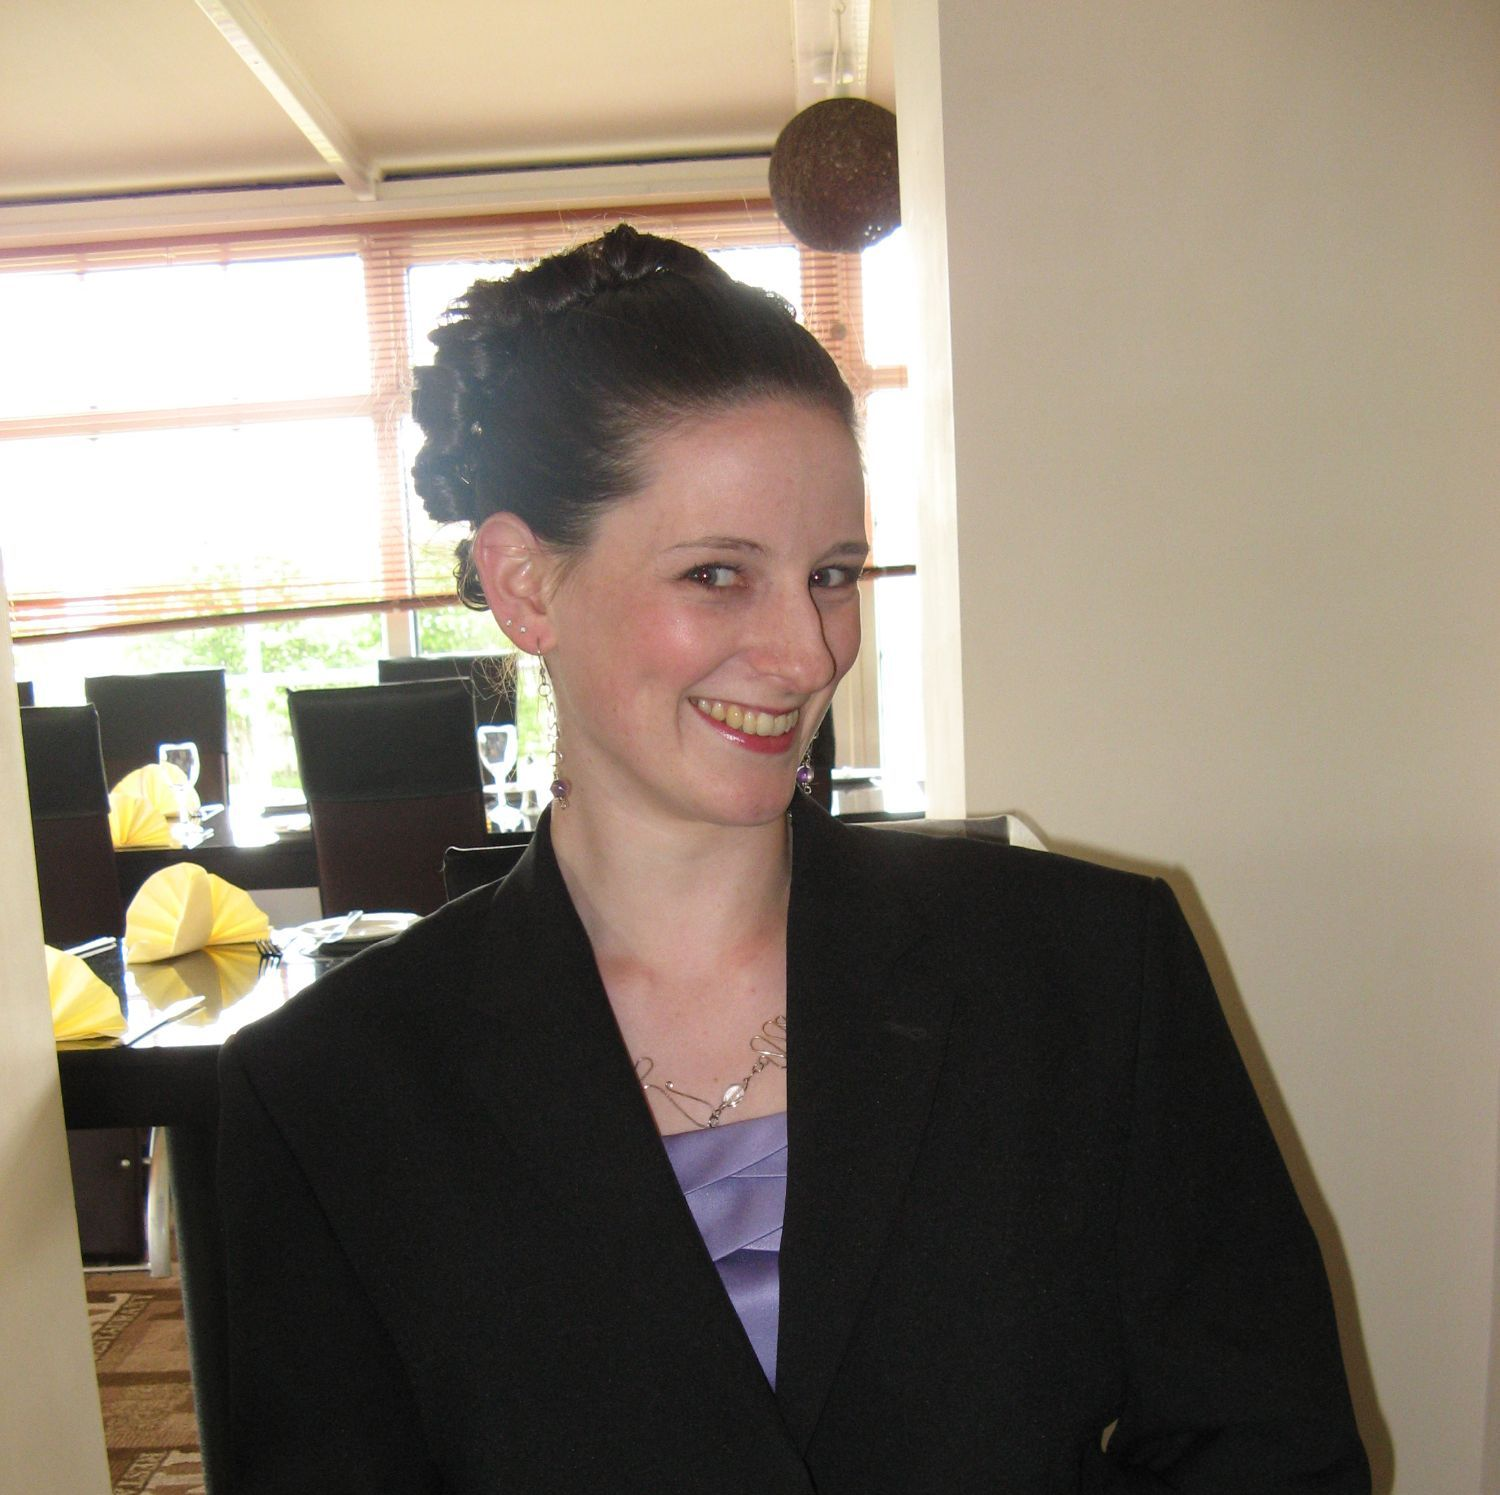 An image of Caz dressed up for a wedding. She is wearing a suit jacket over a lilac dress, and her hair is done up in curls around the crown of her head.